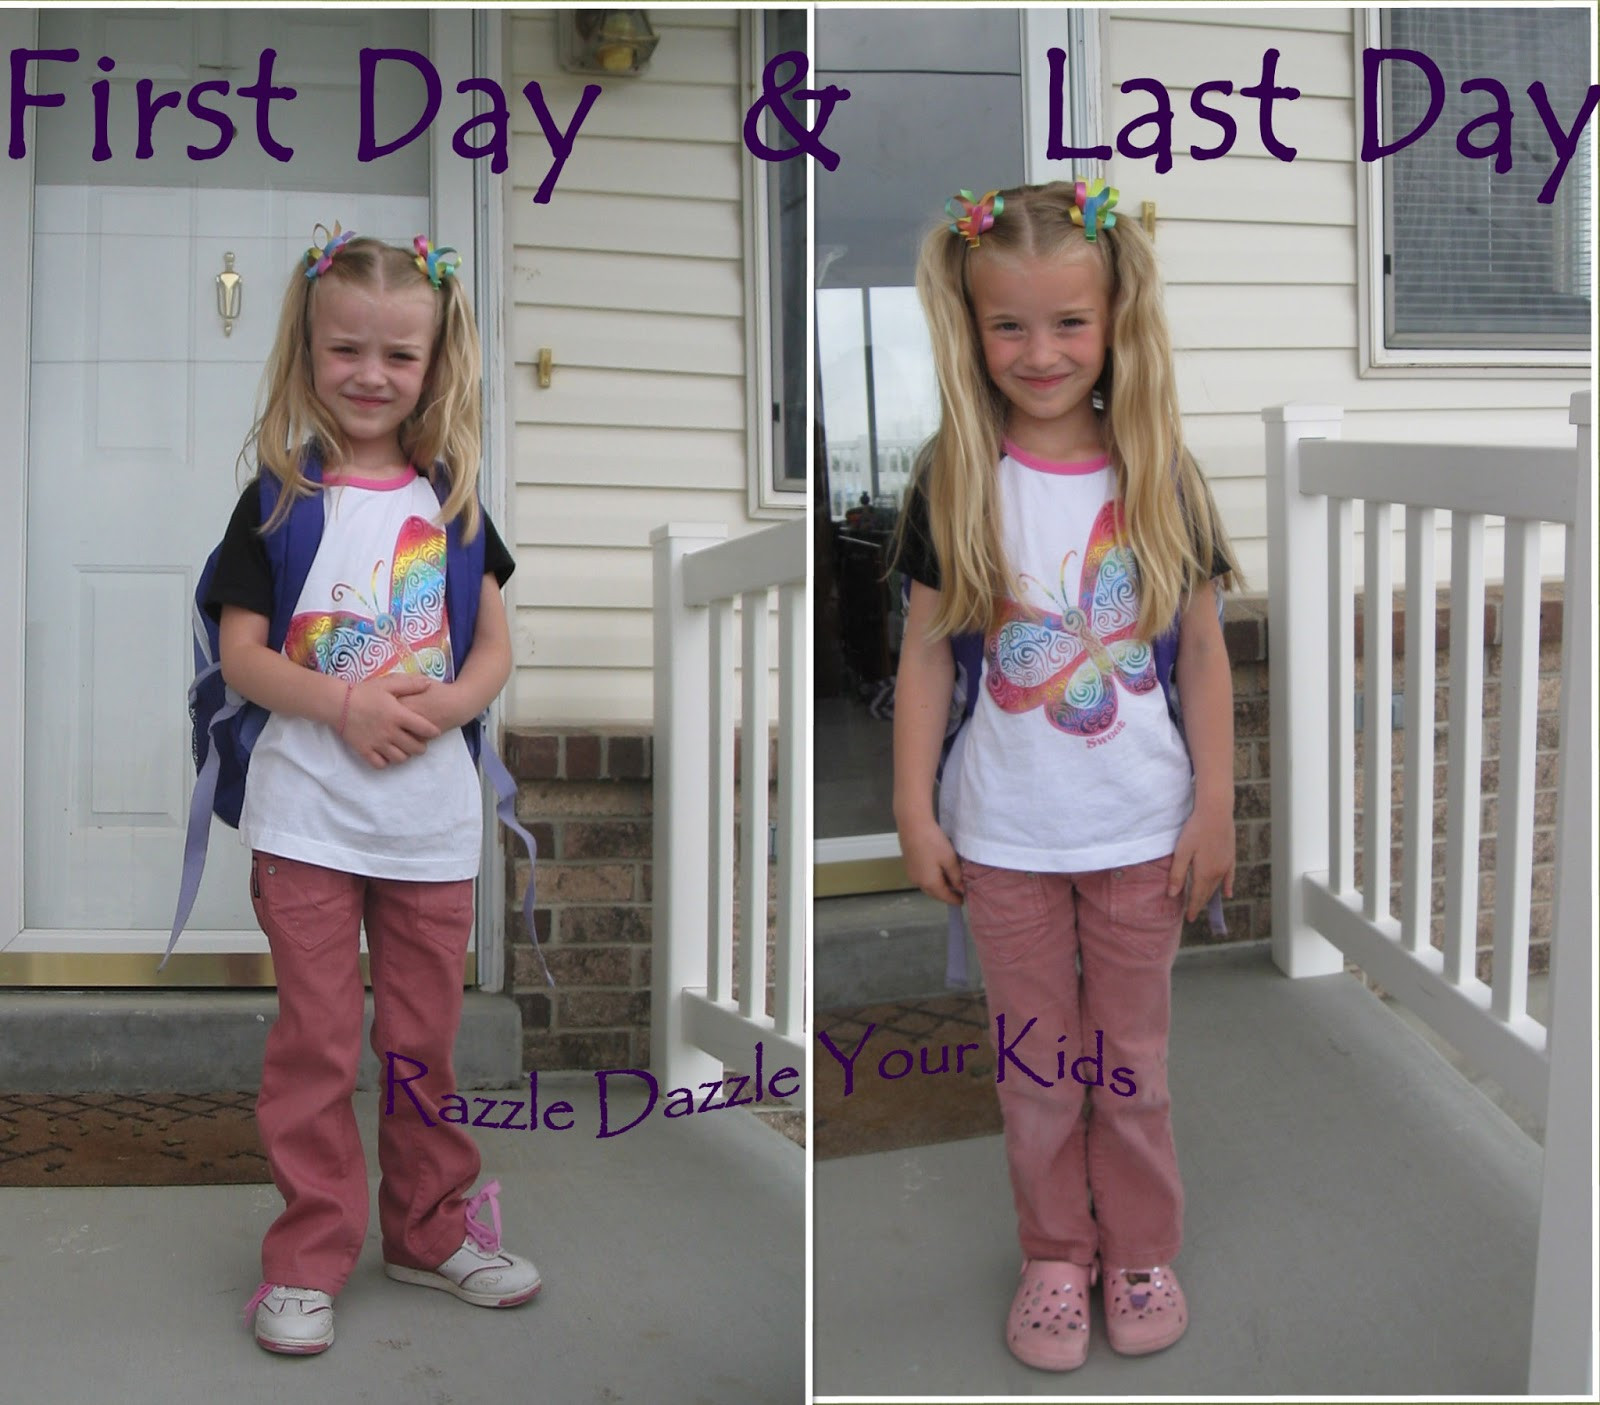 Best ideas about Cute Hairstyles For The First Day Of School . Save or Pin Razzle Dazzle Your Kids Now.